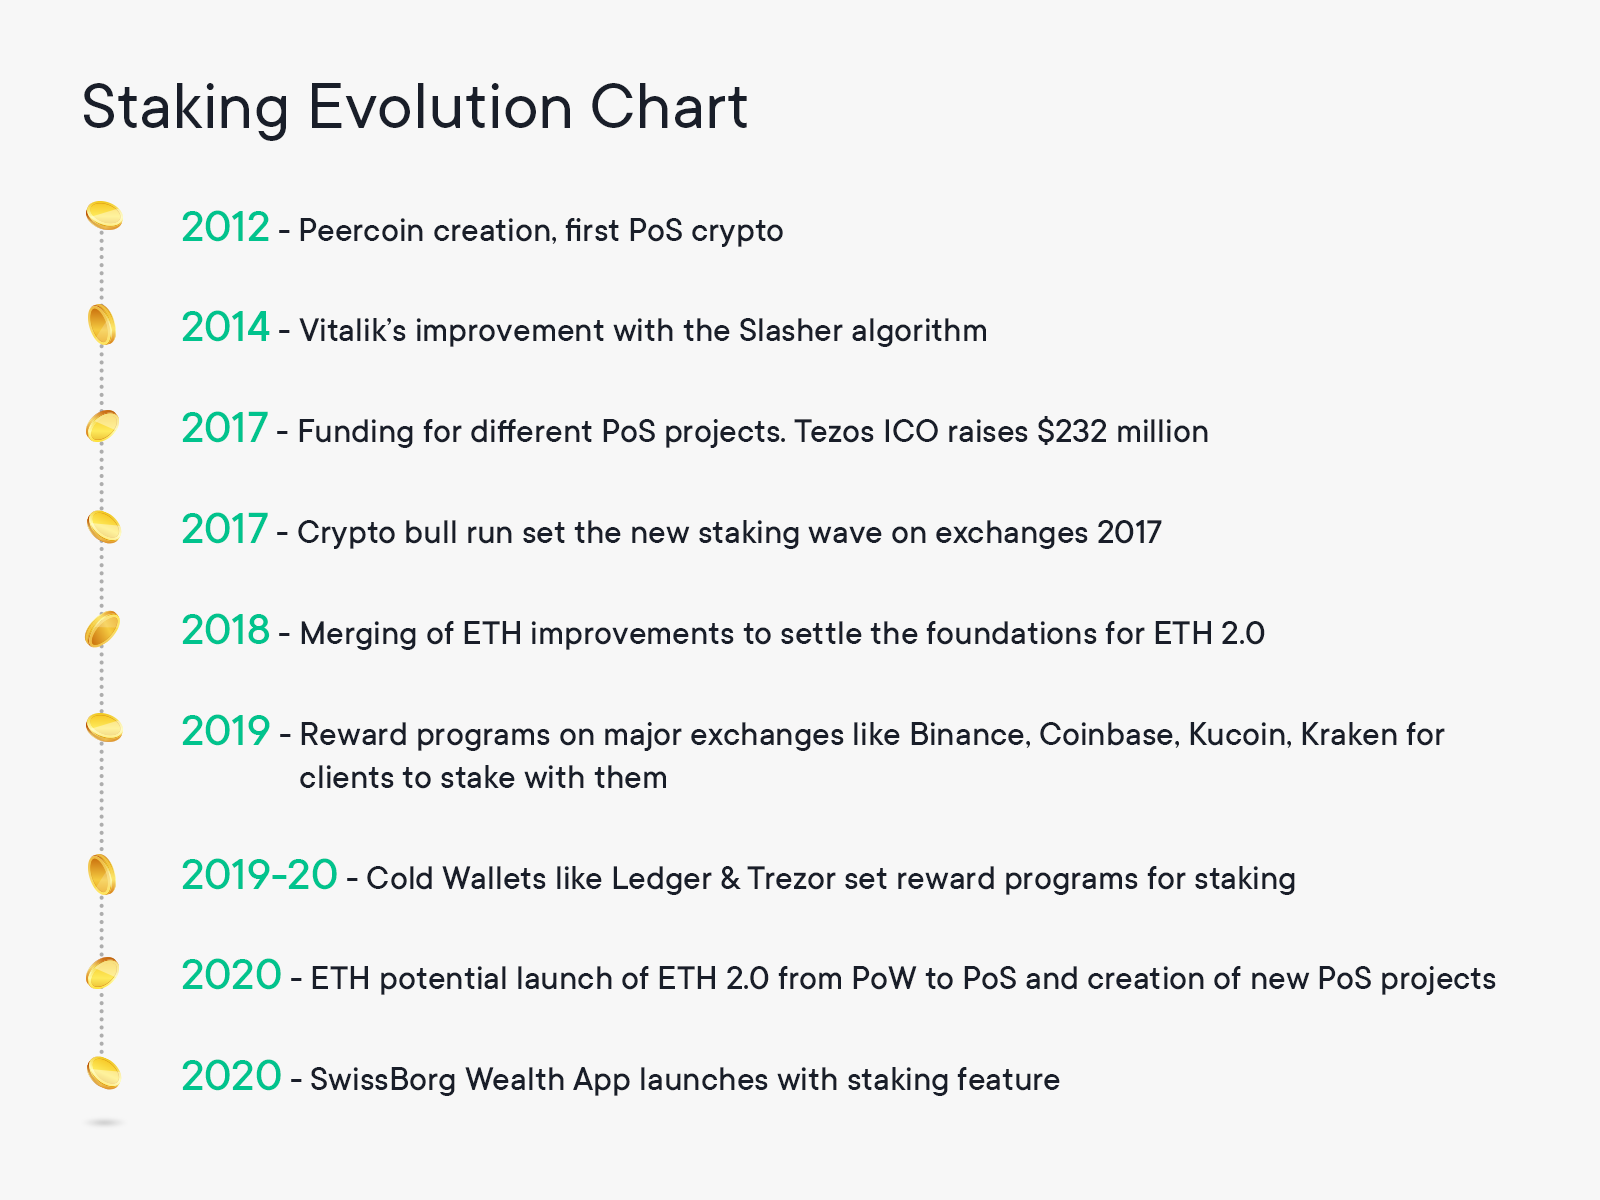 Evolution of staking cryptocurrency timeline